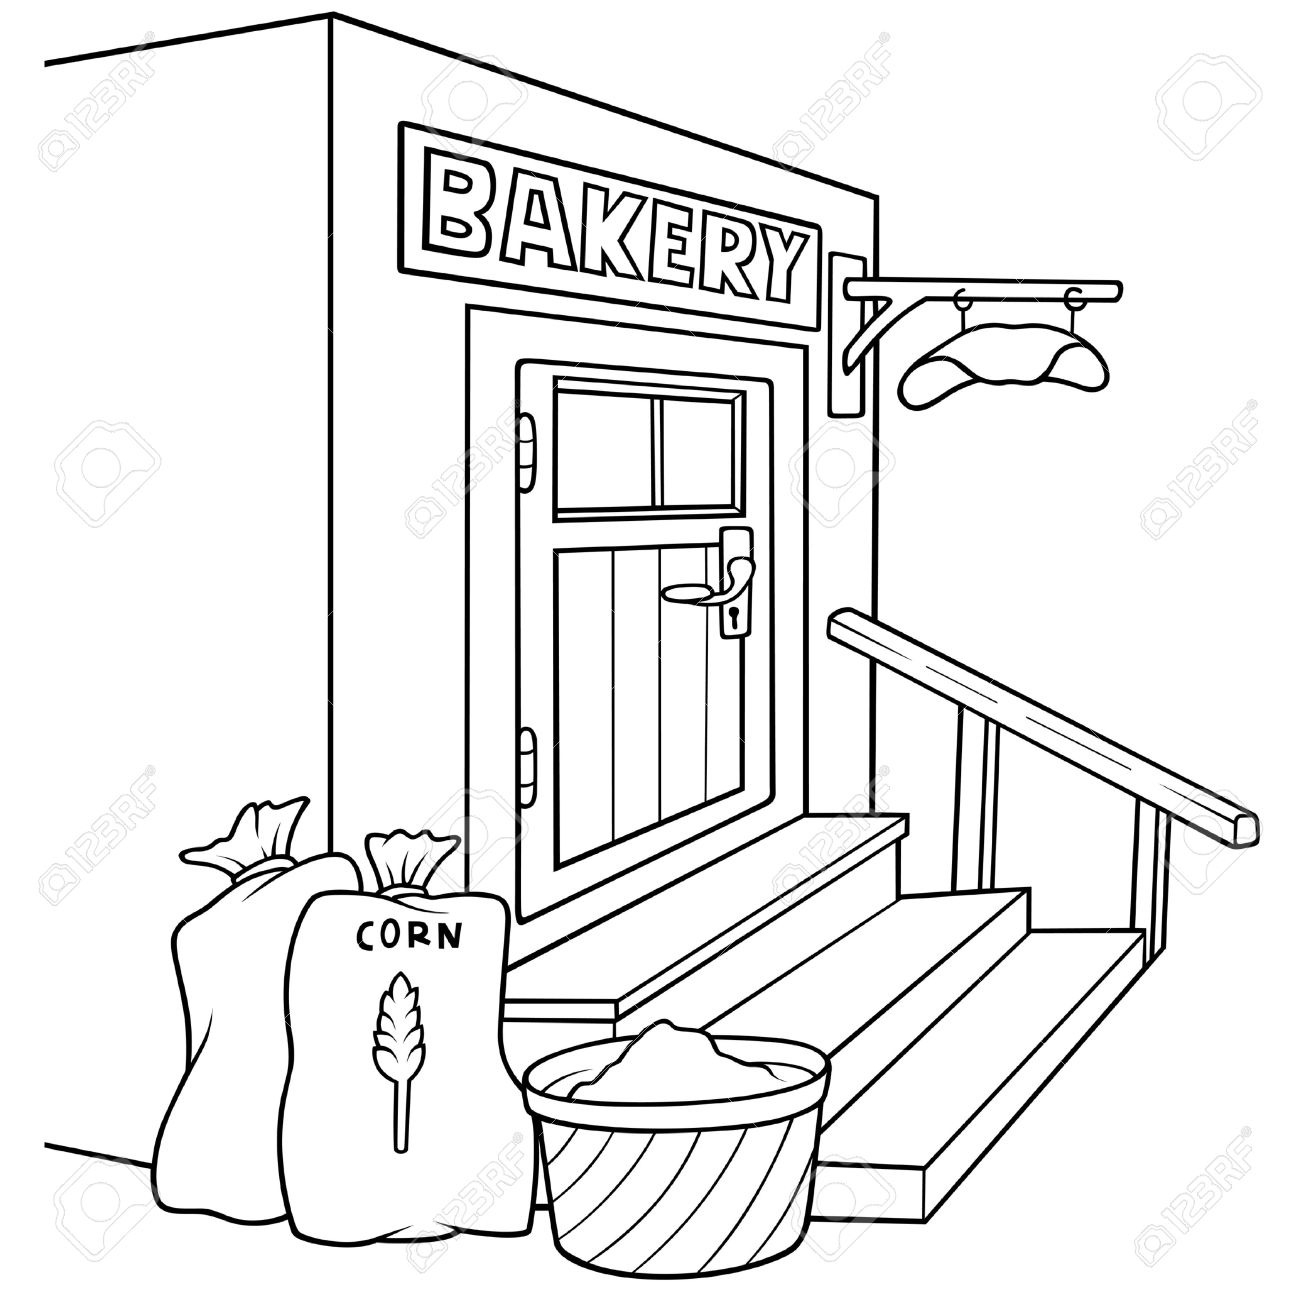 Bakery clipart bread shop, Bakery bread shop Transparent.